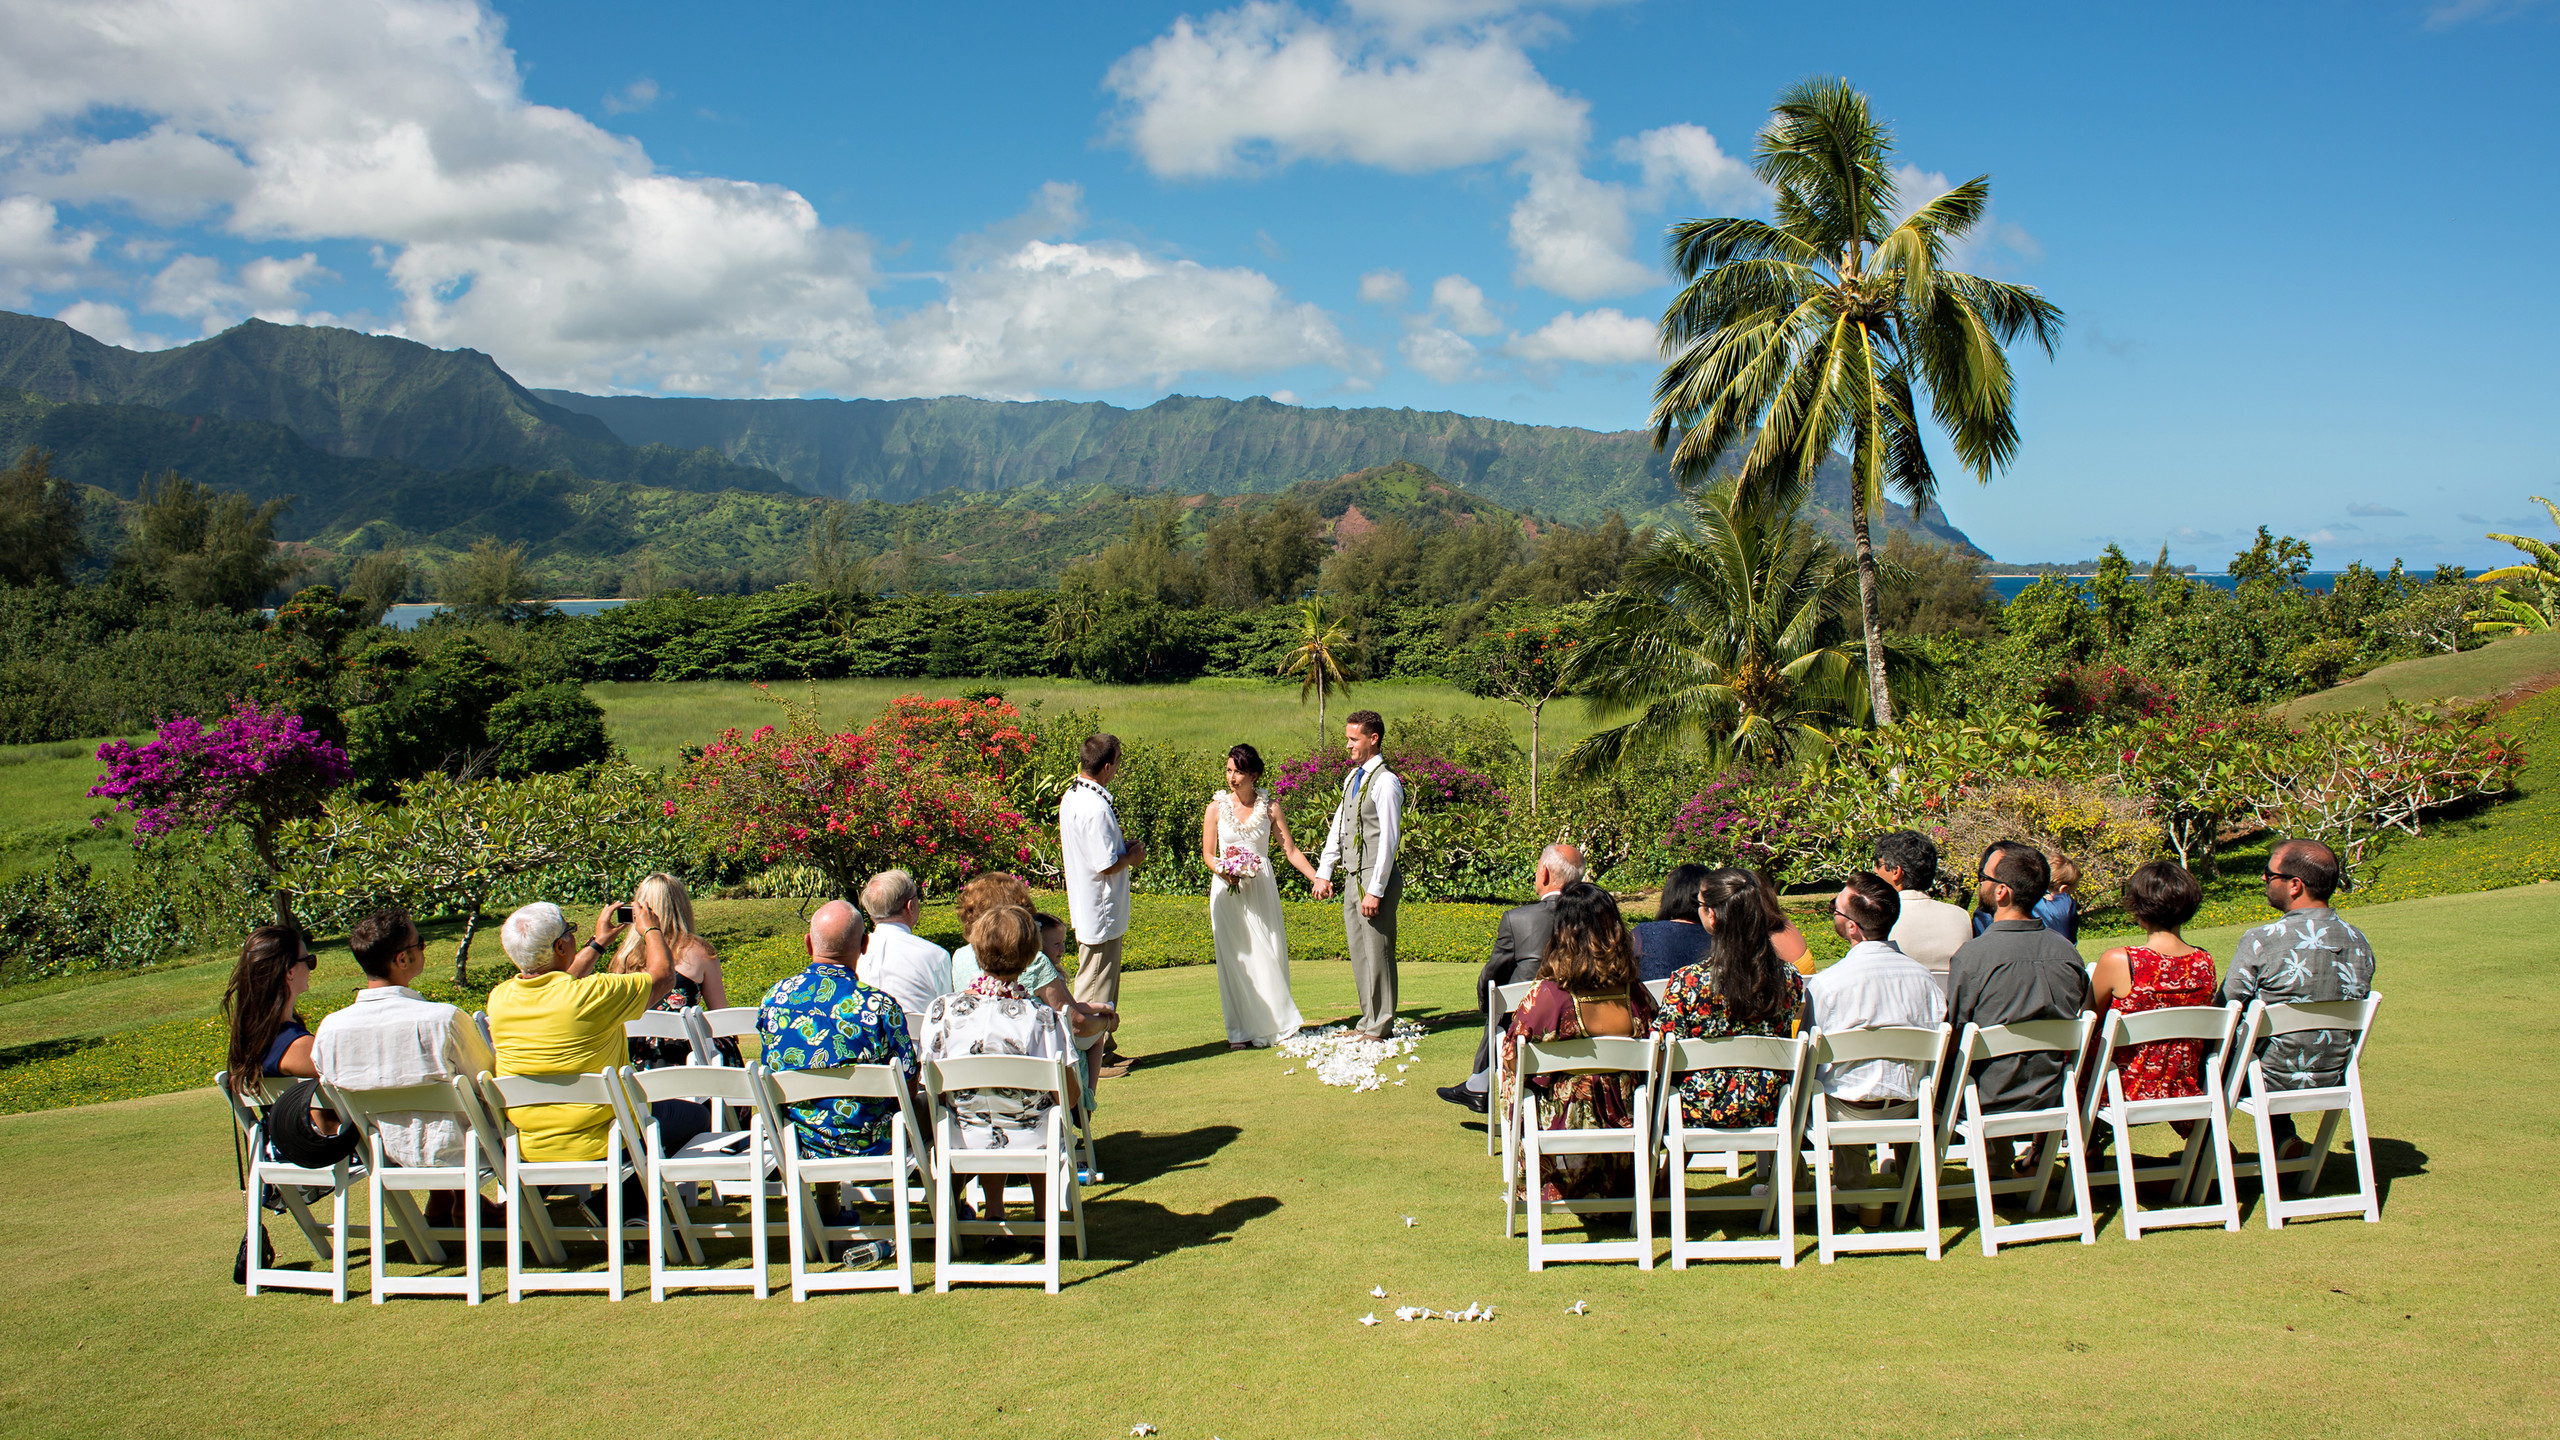 Island Echoes Photography favorite wedding venue at Hanalei Bay Resort for weddings and events.